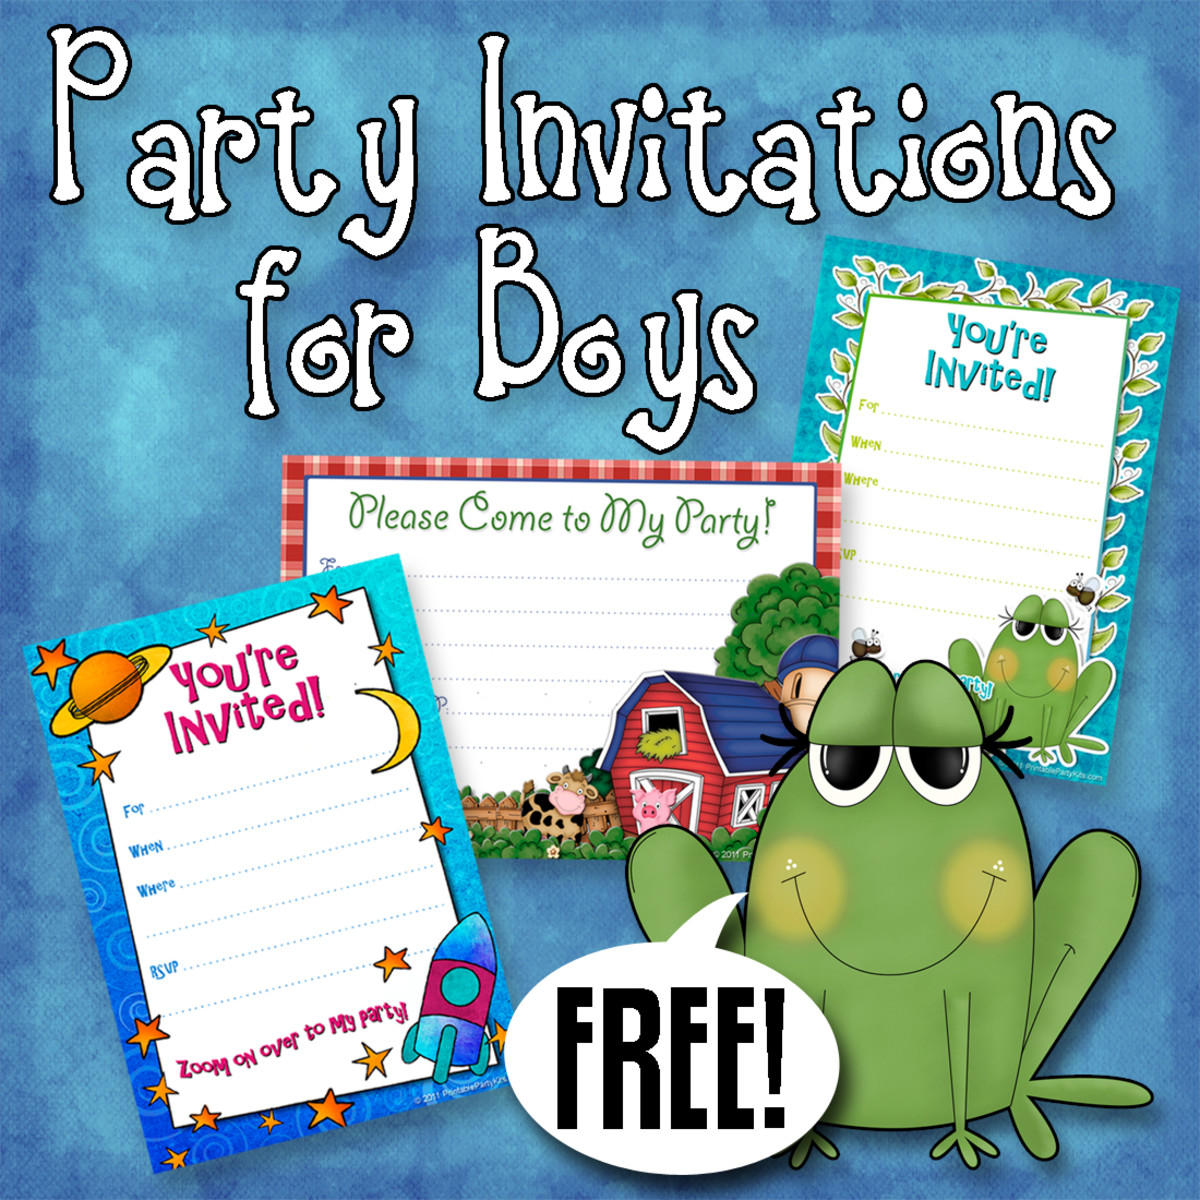 Declarative image for free printable boy birthday invitations